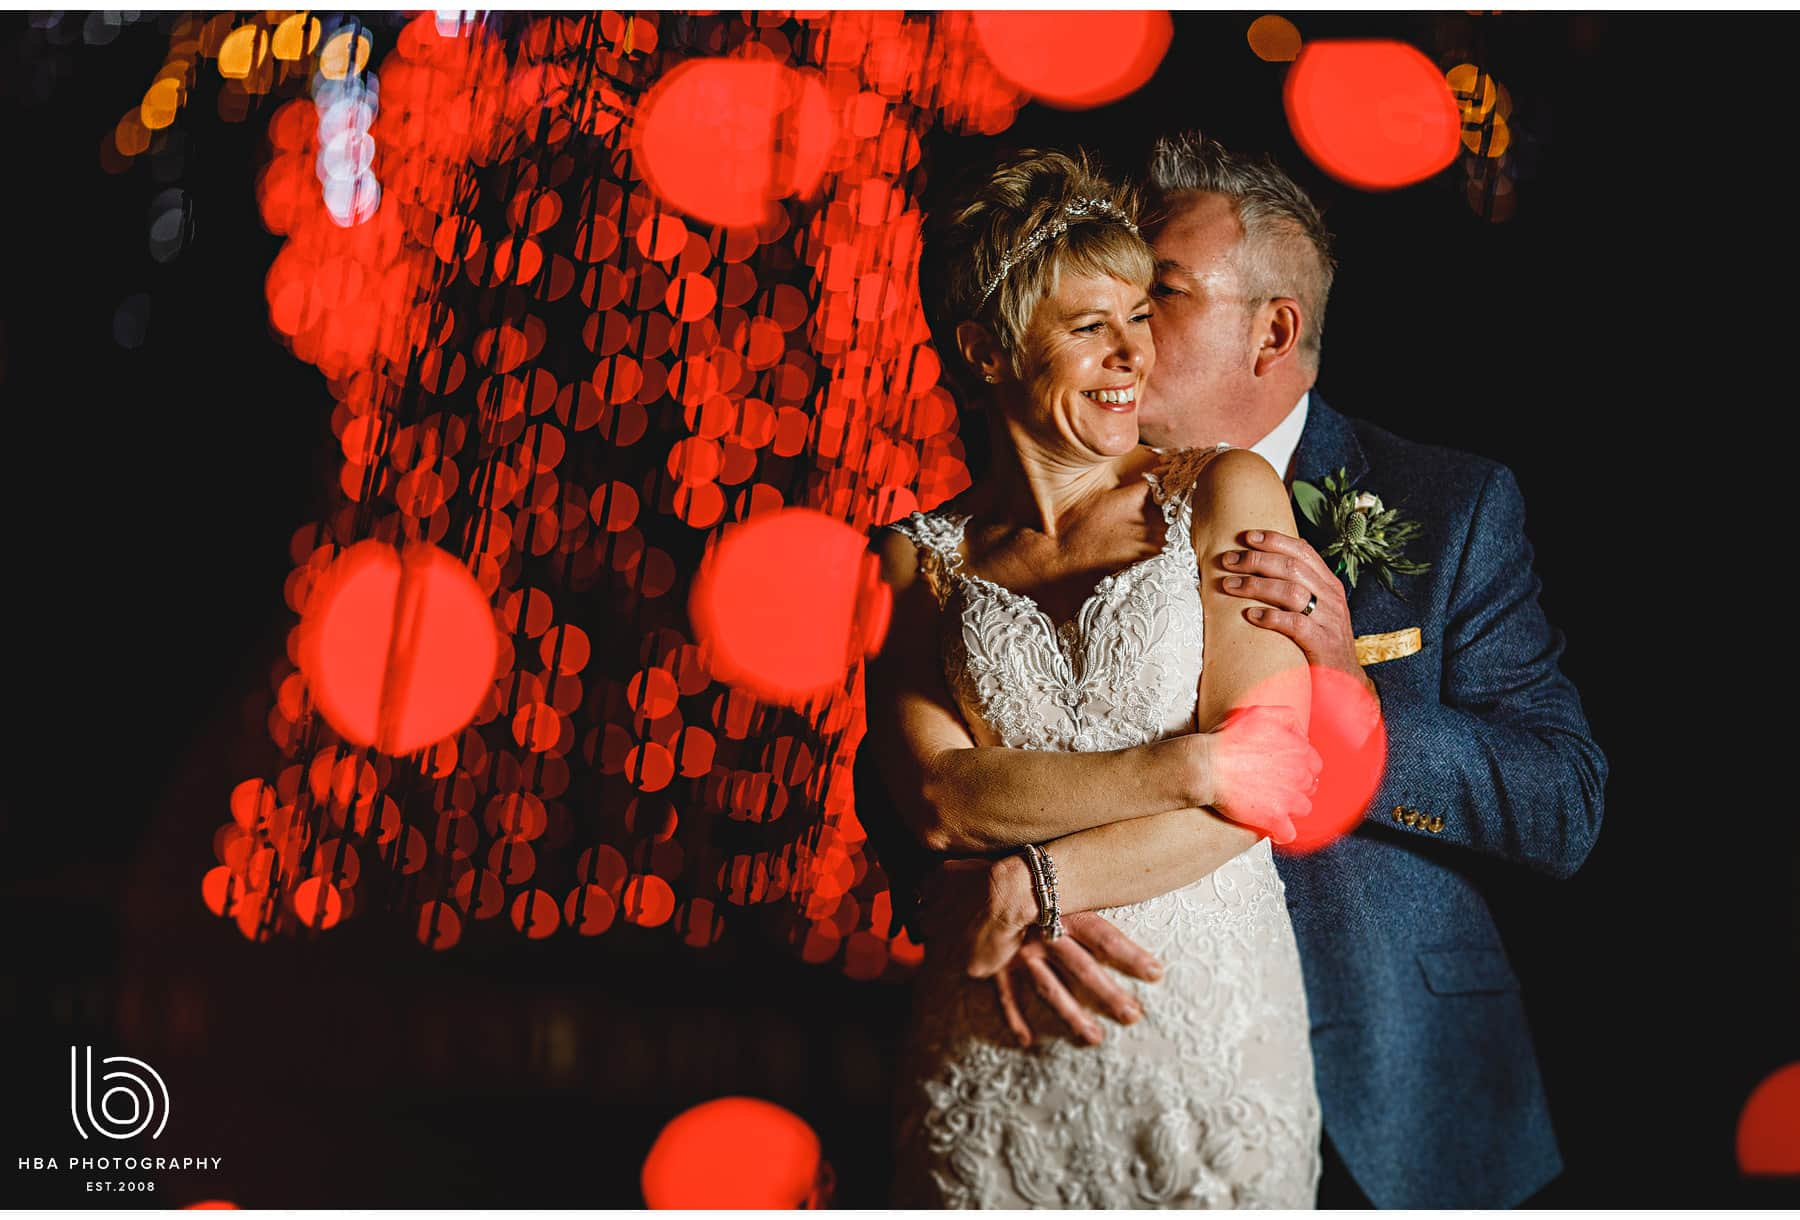 the bride & groom in the fairly lights